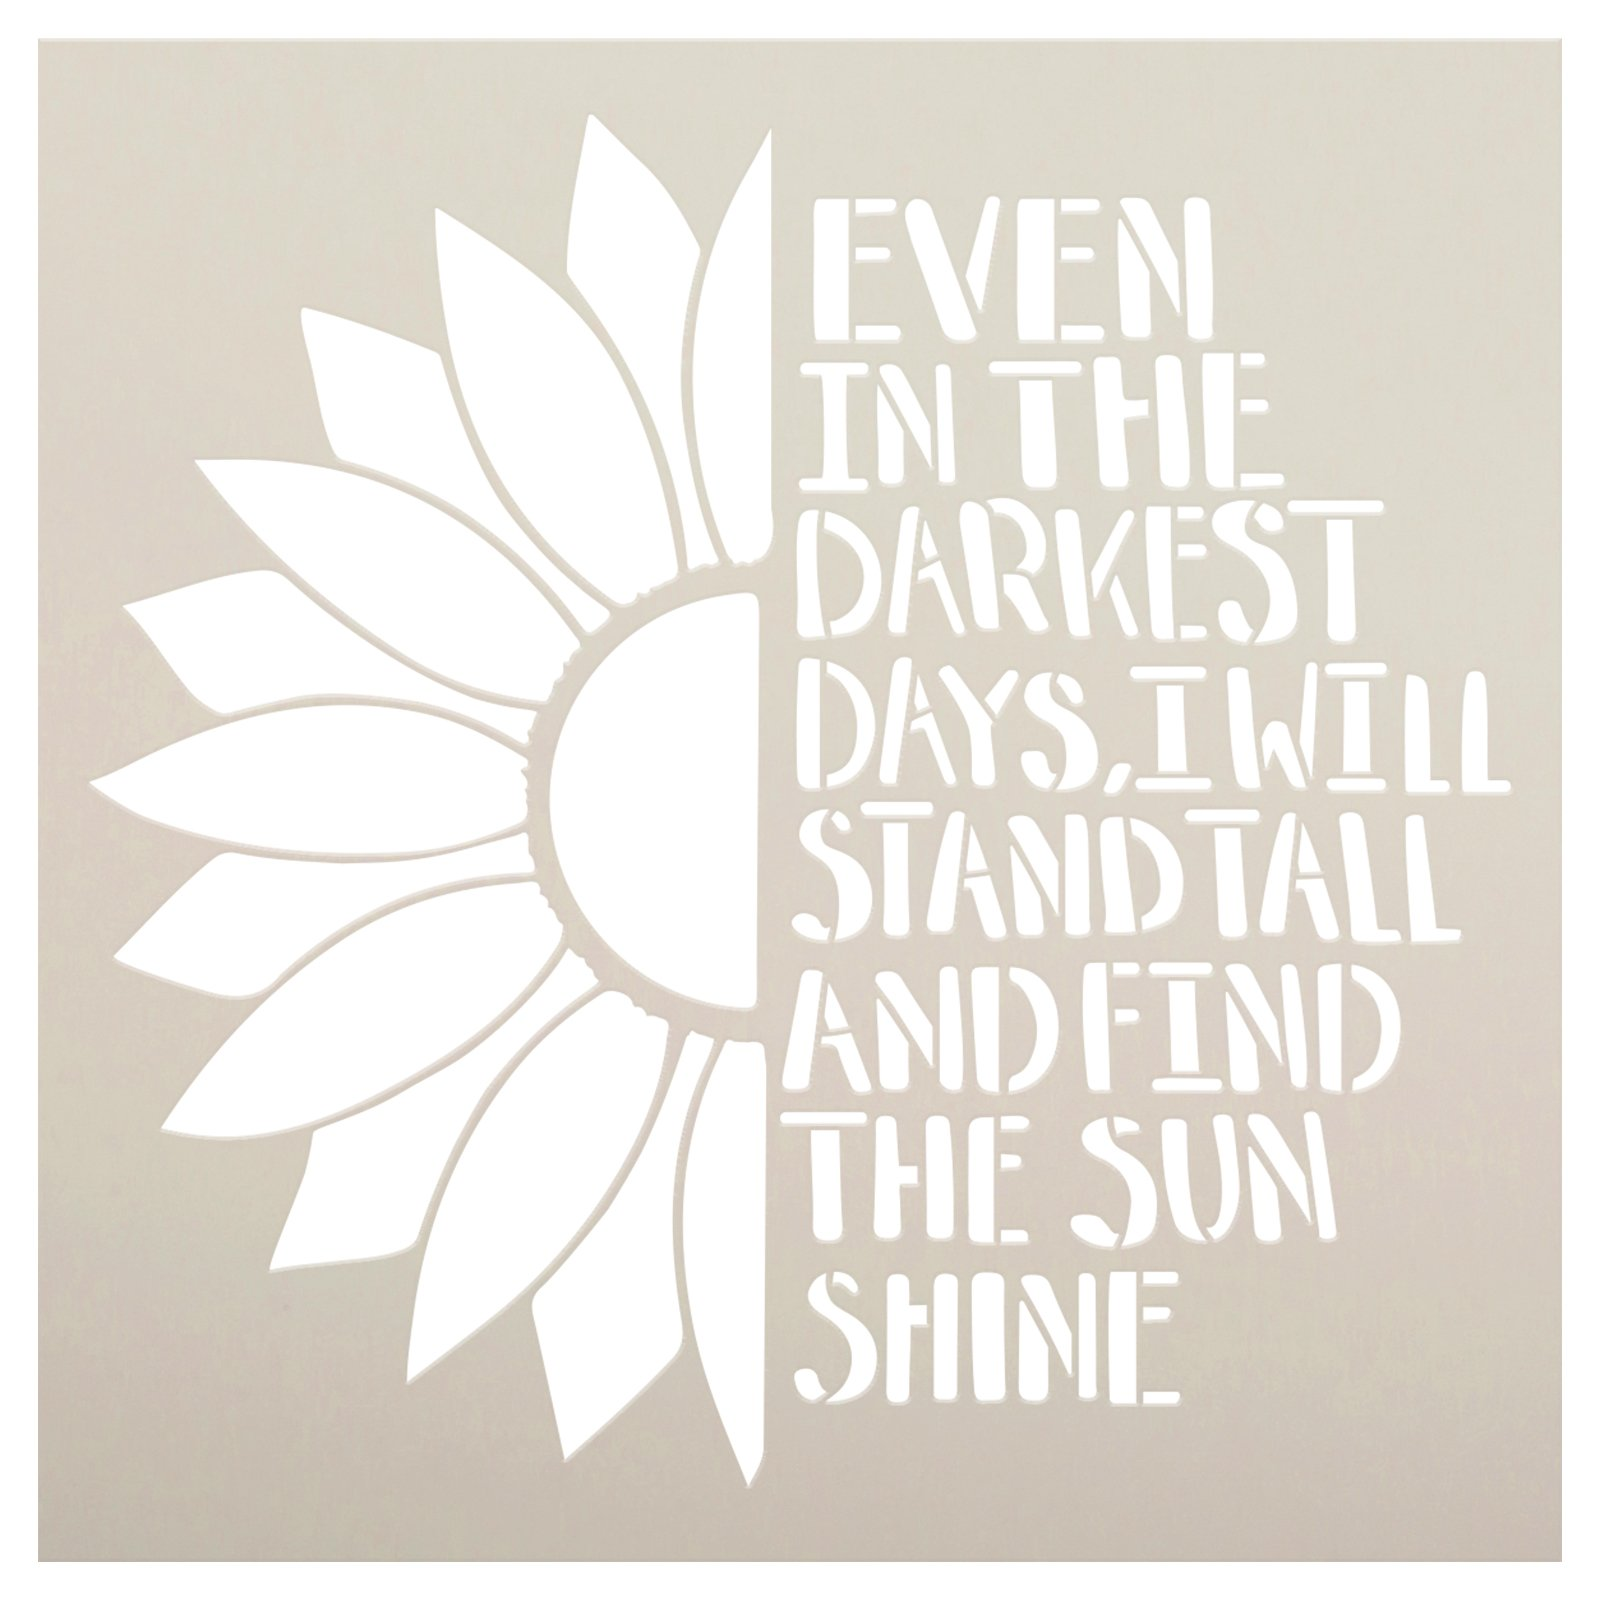 Stand Tall and Find The Sunshine Stencil by StudioR12   Craft DIY Sunflower Home Decor   Paint Wood Sign   Reusable Mylar Template   Select Size